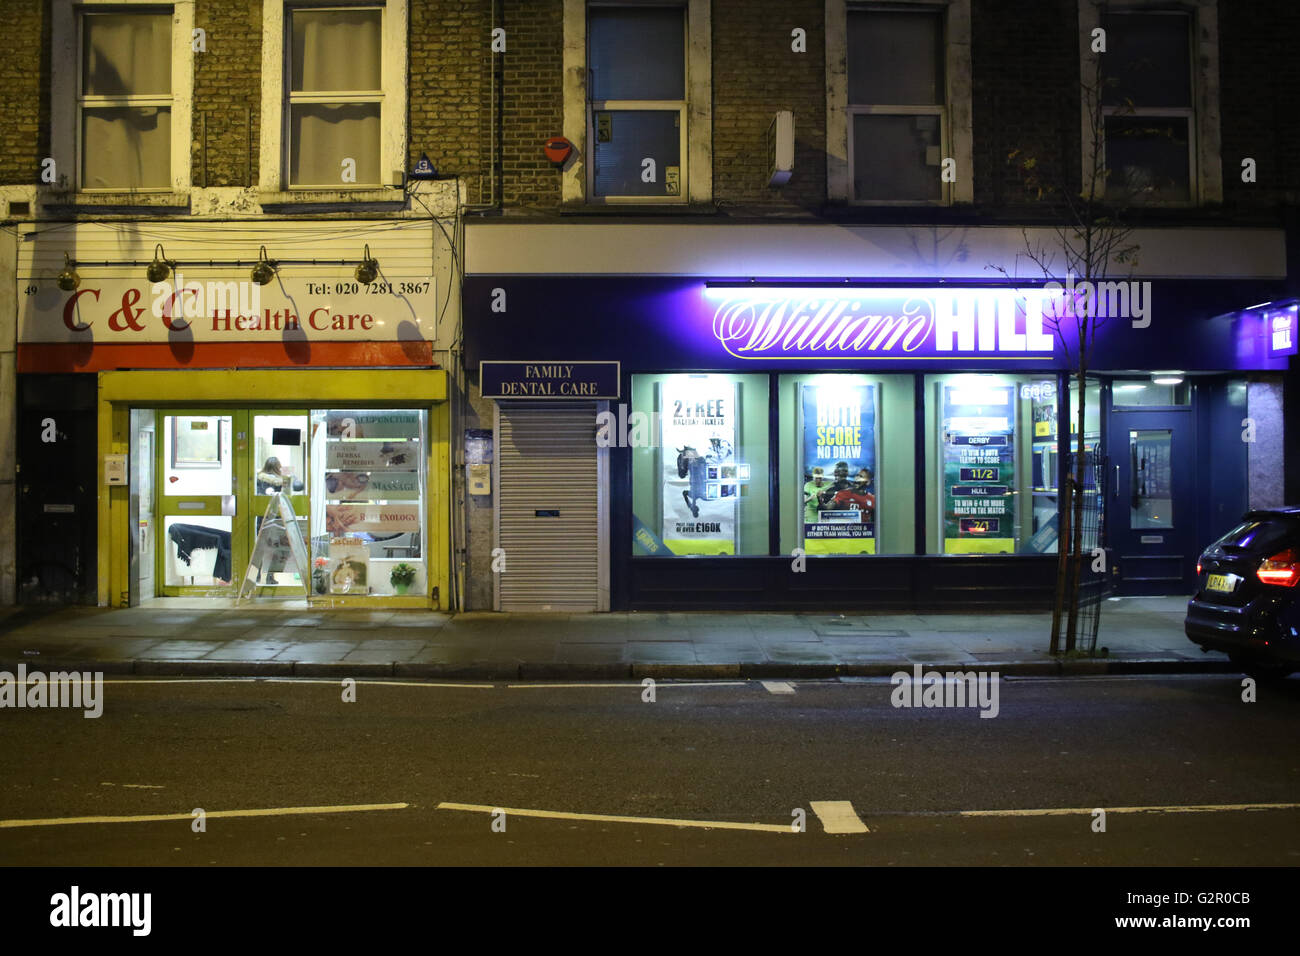 Shop frontages of a health care center and Willam Hill bookmakers - Stock Image